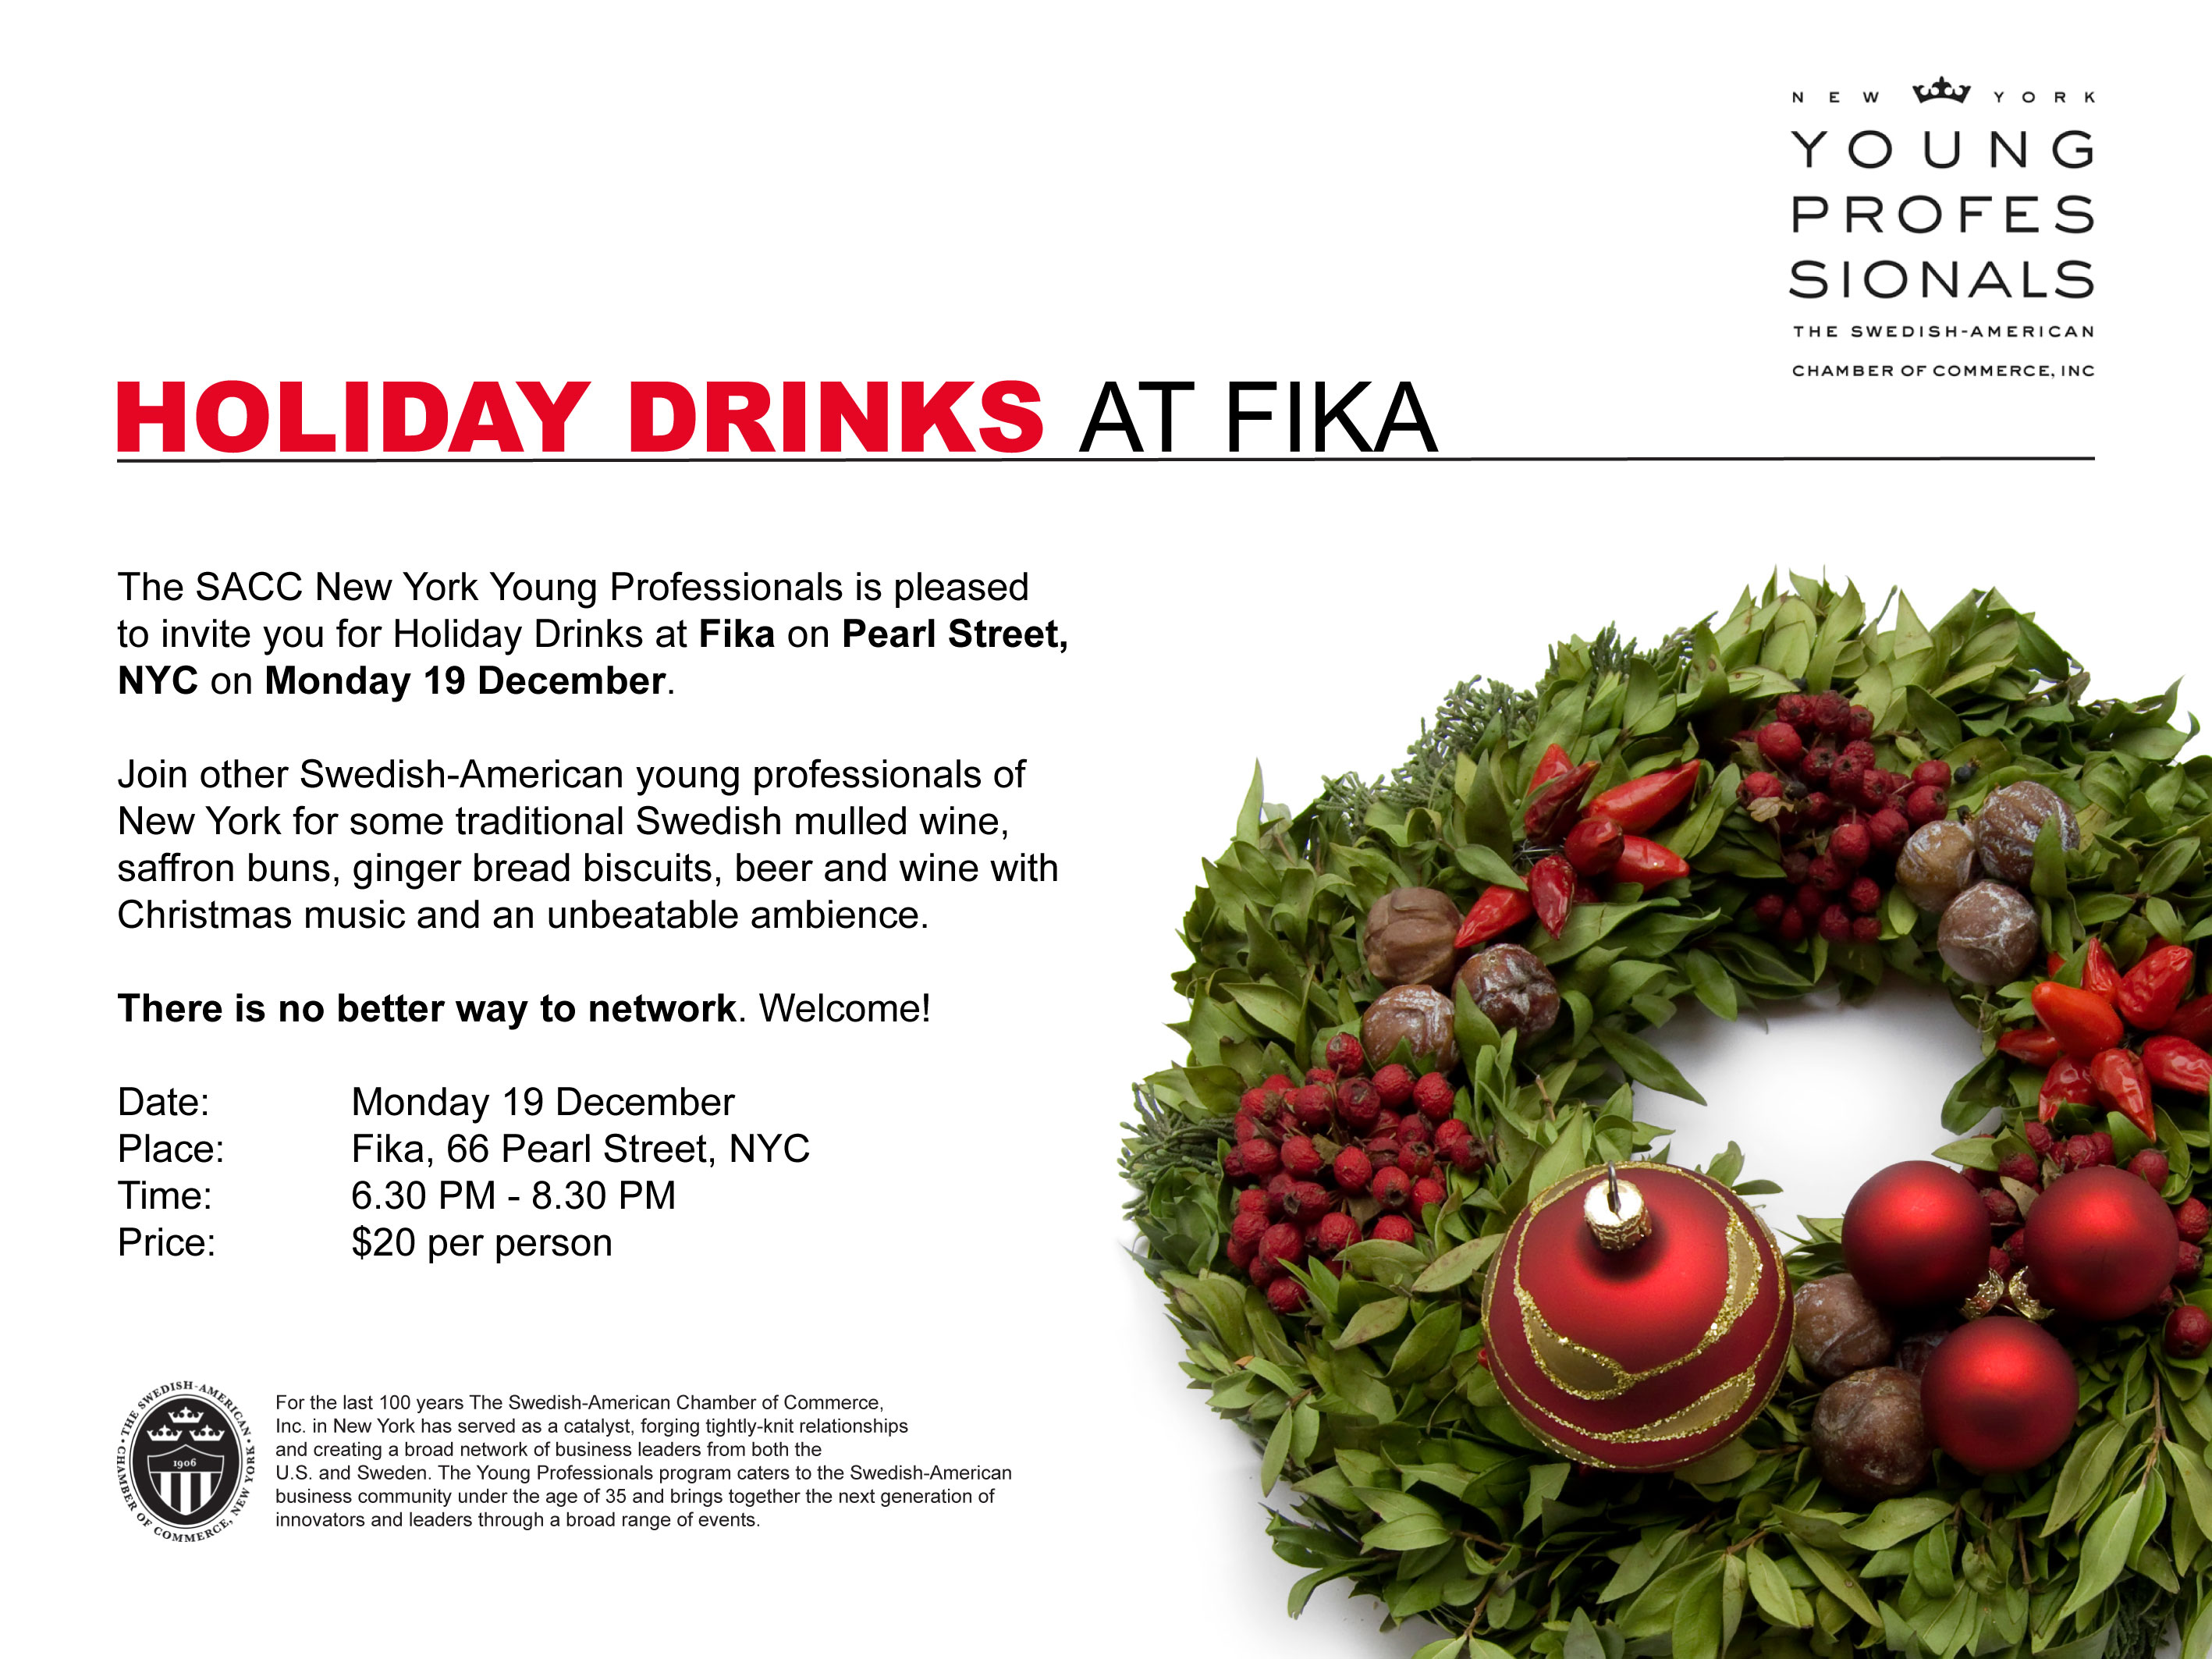 YP Holiday Drinks